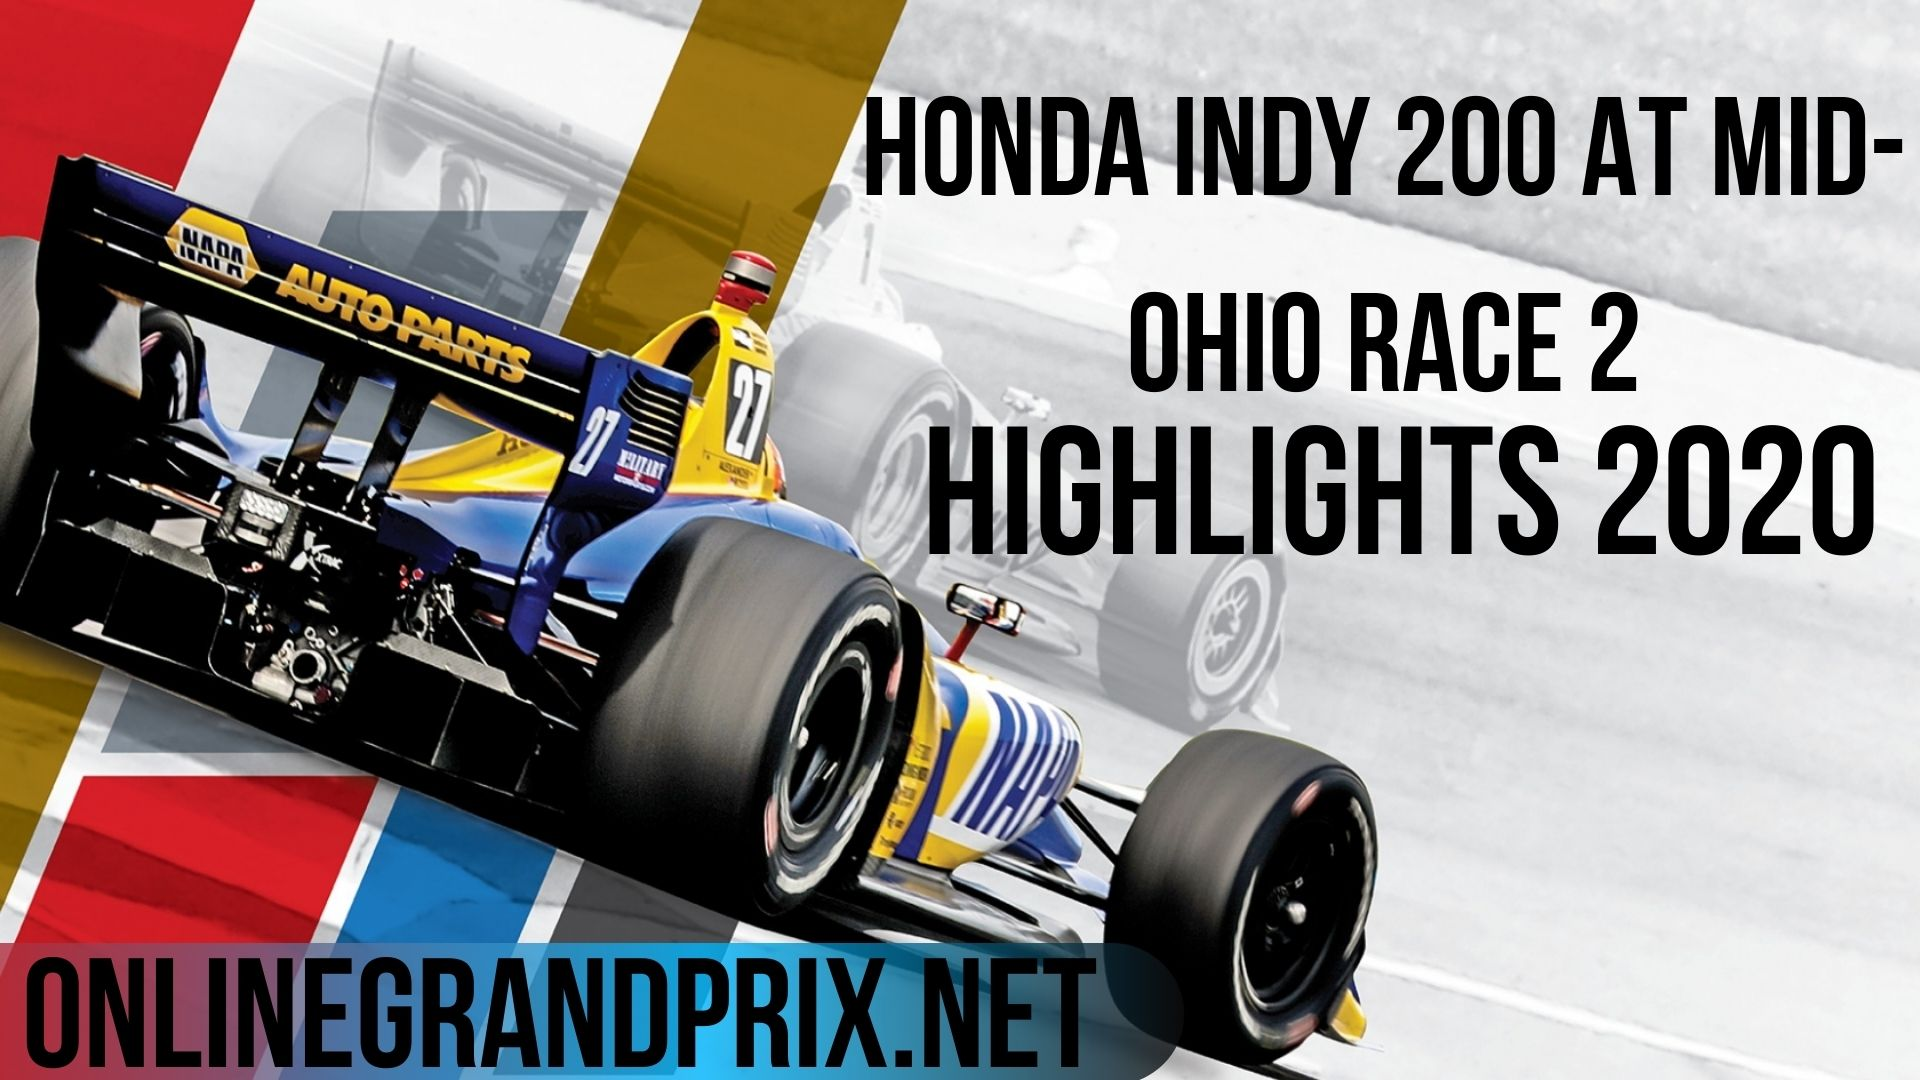 Honda INDY 200 At Mid-Ohio Race 2 Highlights INDYCAR 2020